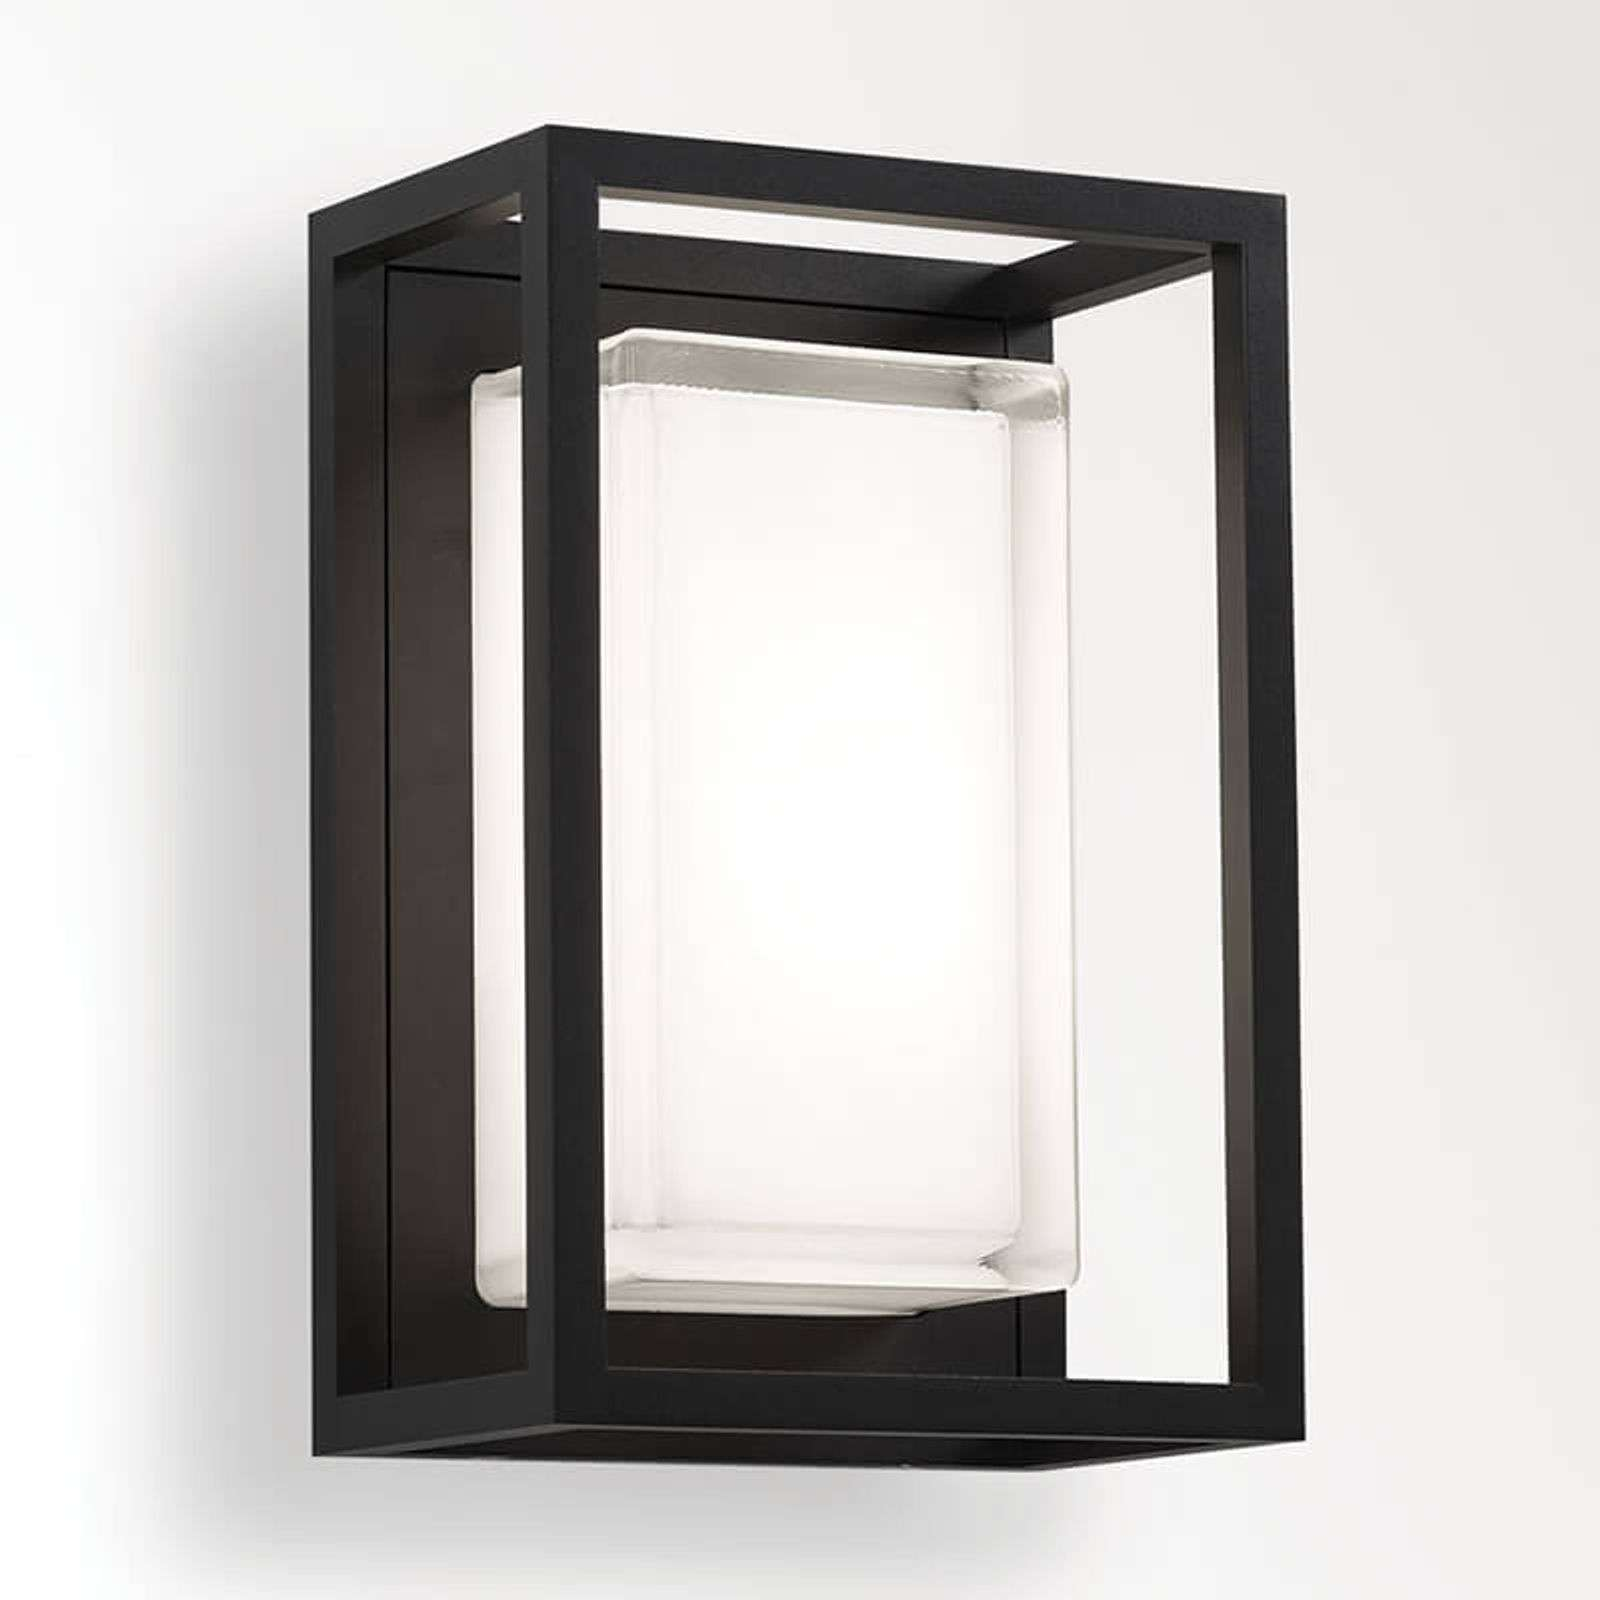 Applique LED rectangulaire Montur M IP65